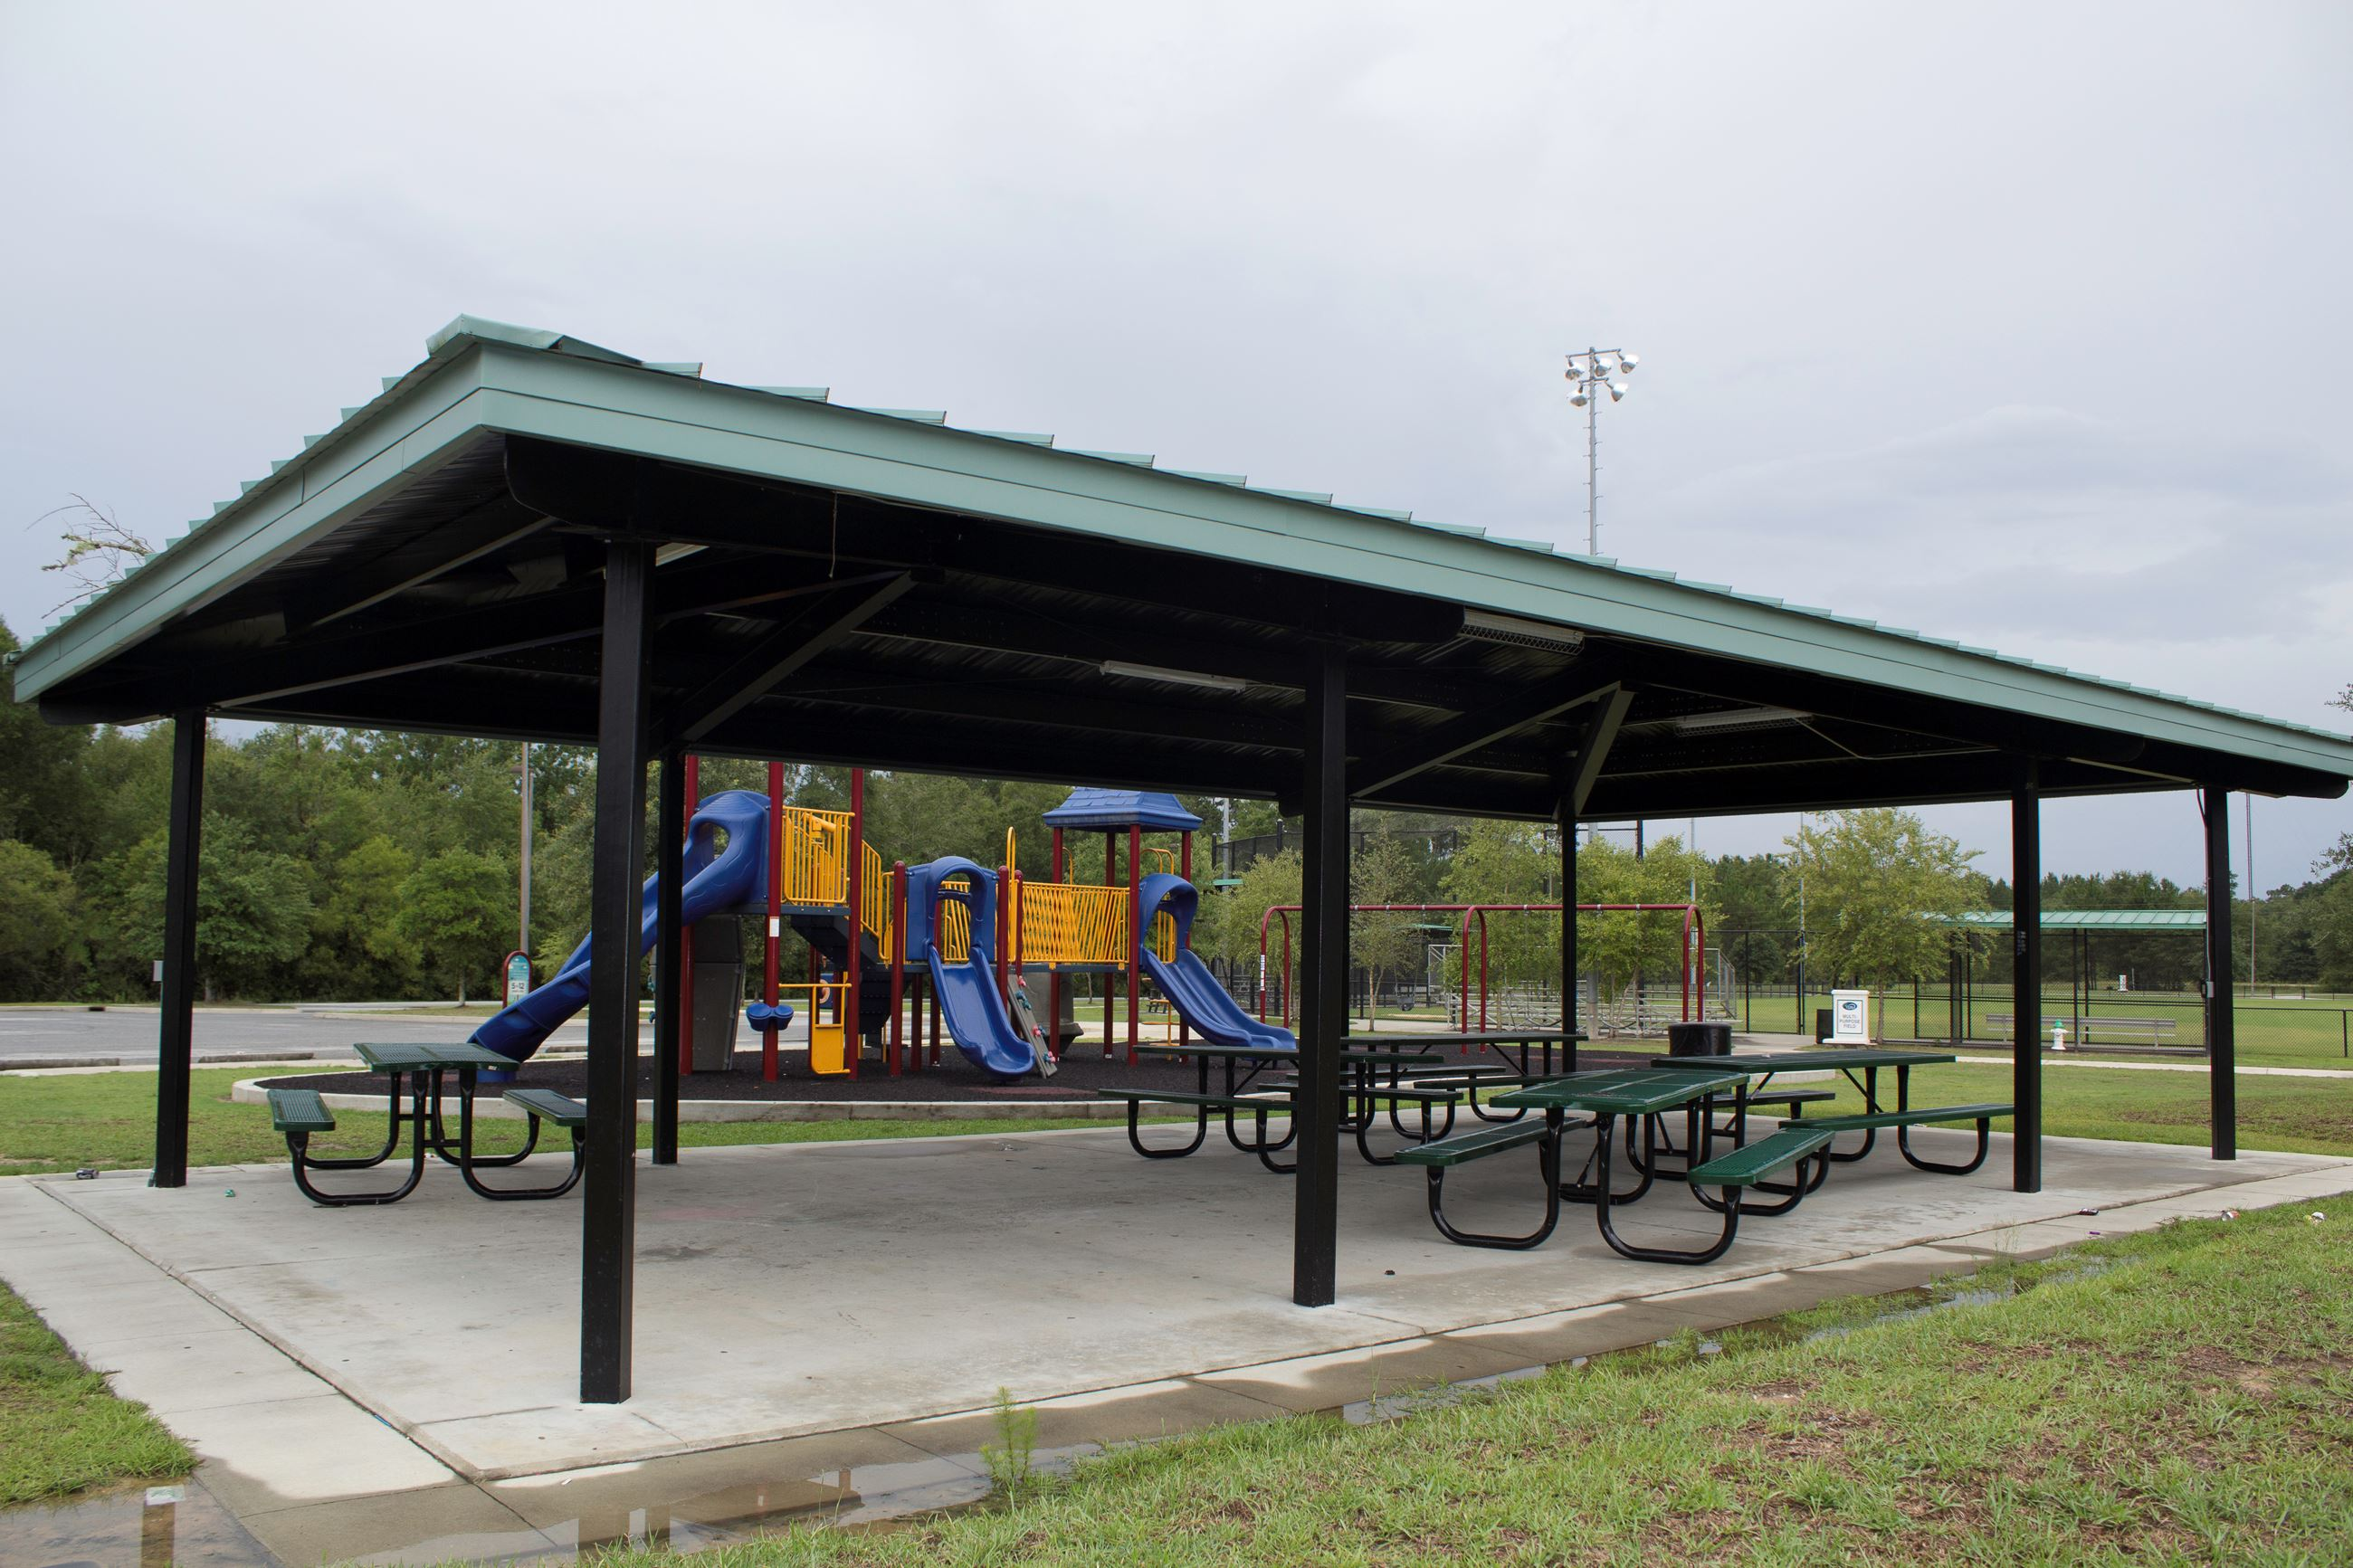 An image of a picnic shelter with a playground behind it.